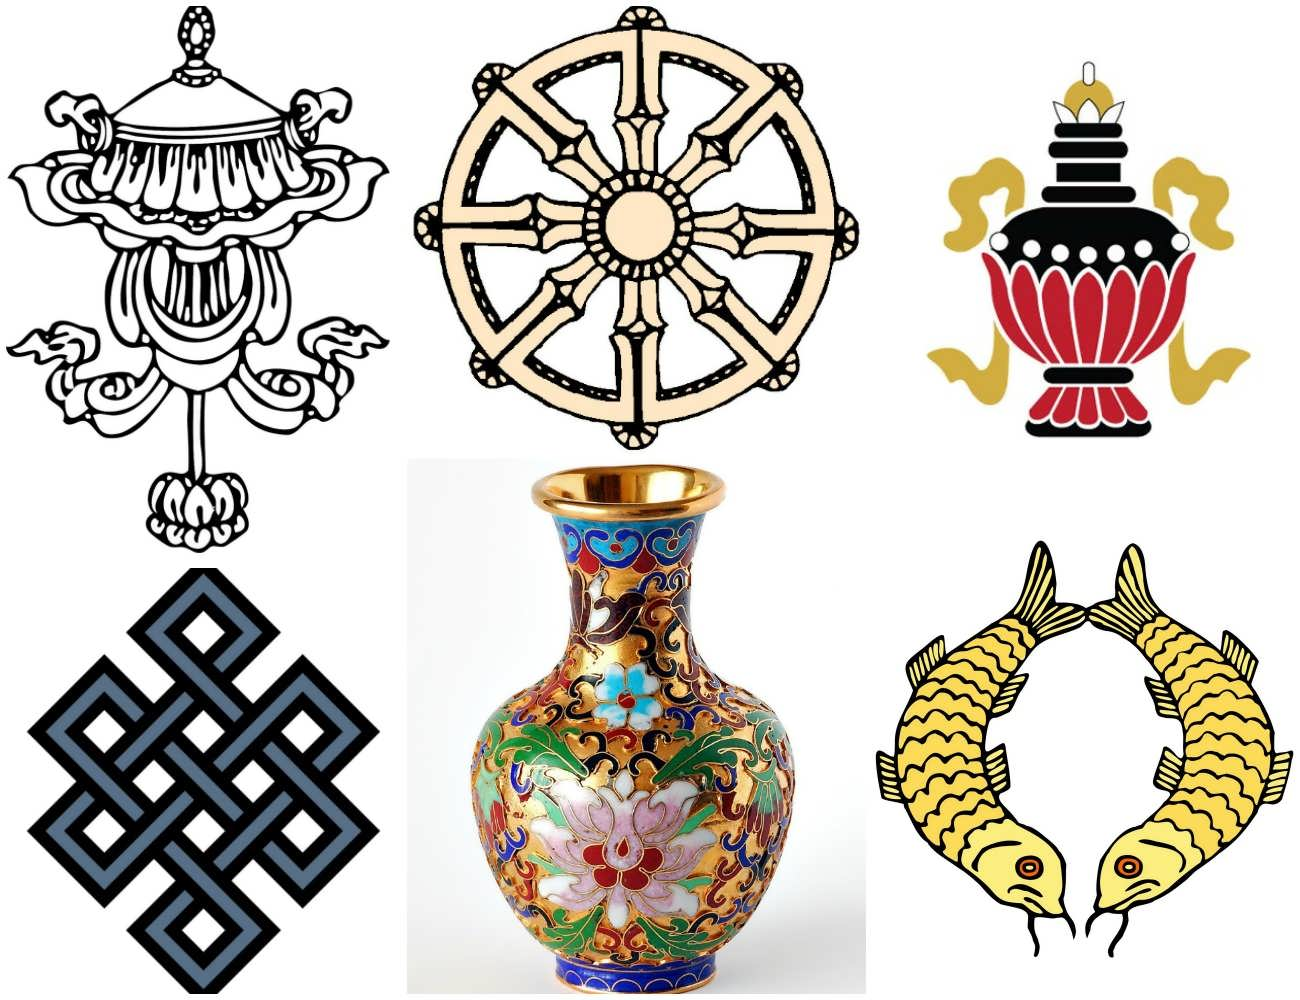 Buddhist symbols the lotus the umbrella and more buddhist symbols and their meanings buycottarizona